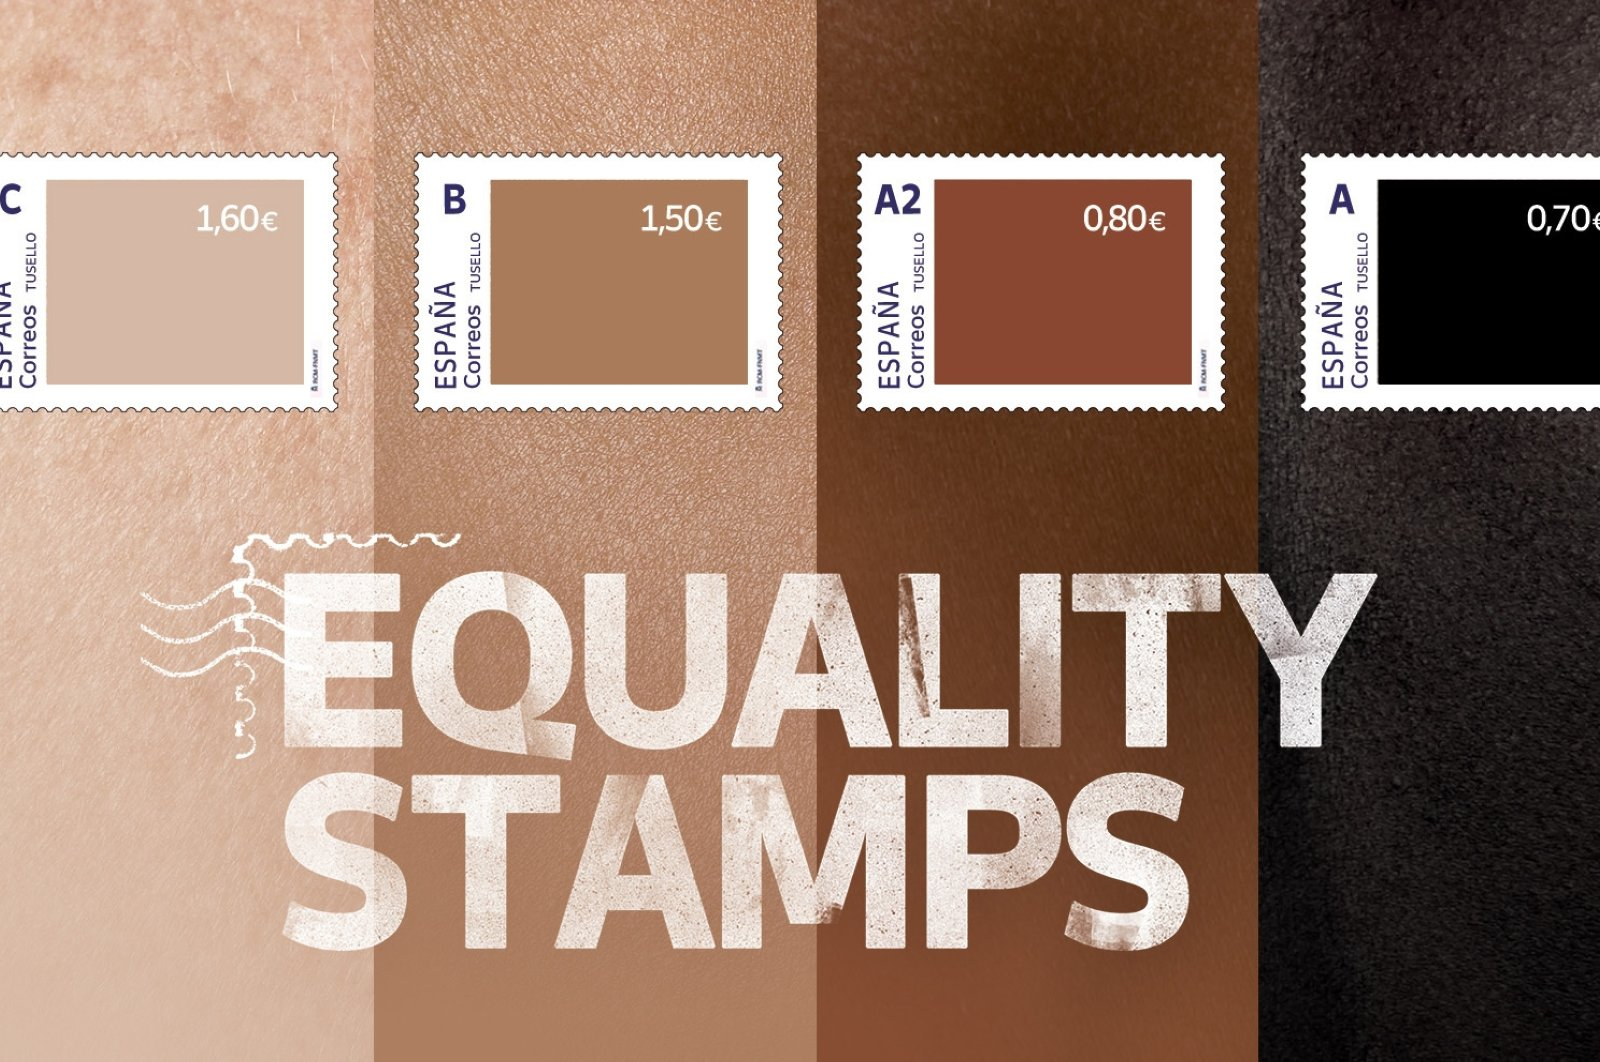 A poster of the well-intentioned but badly thought out campaign by Spain's postal service shows a set of four stamps to signify different skin-colored tones. The darker the stamp, the lower the price, Friday, May 28, 2021. (Correos via AP)